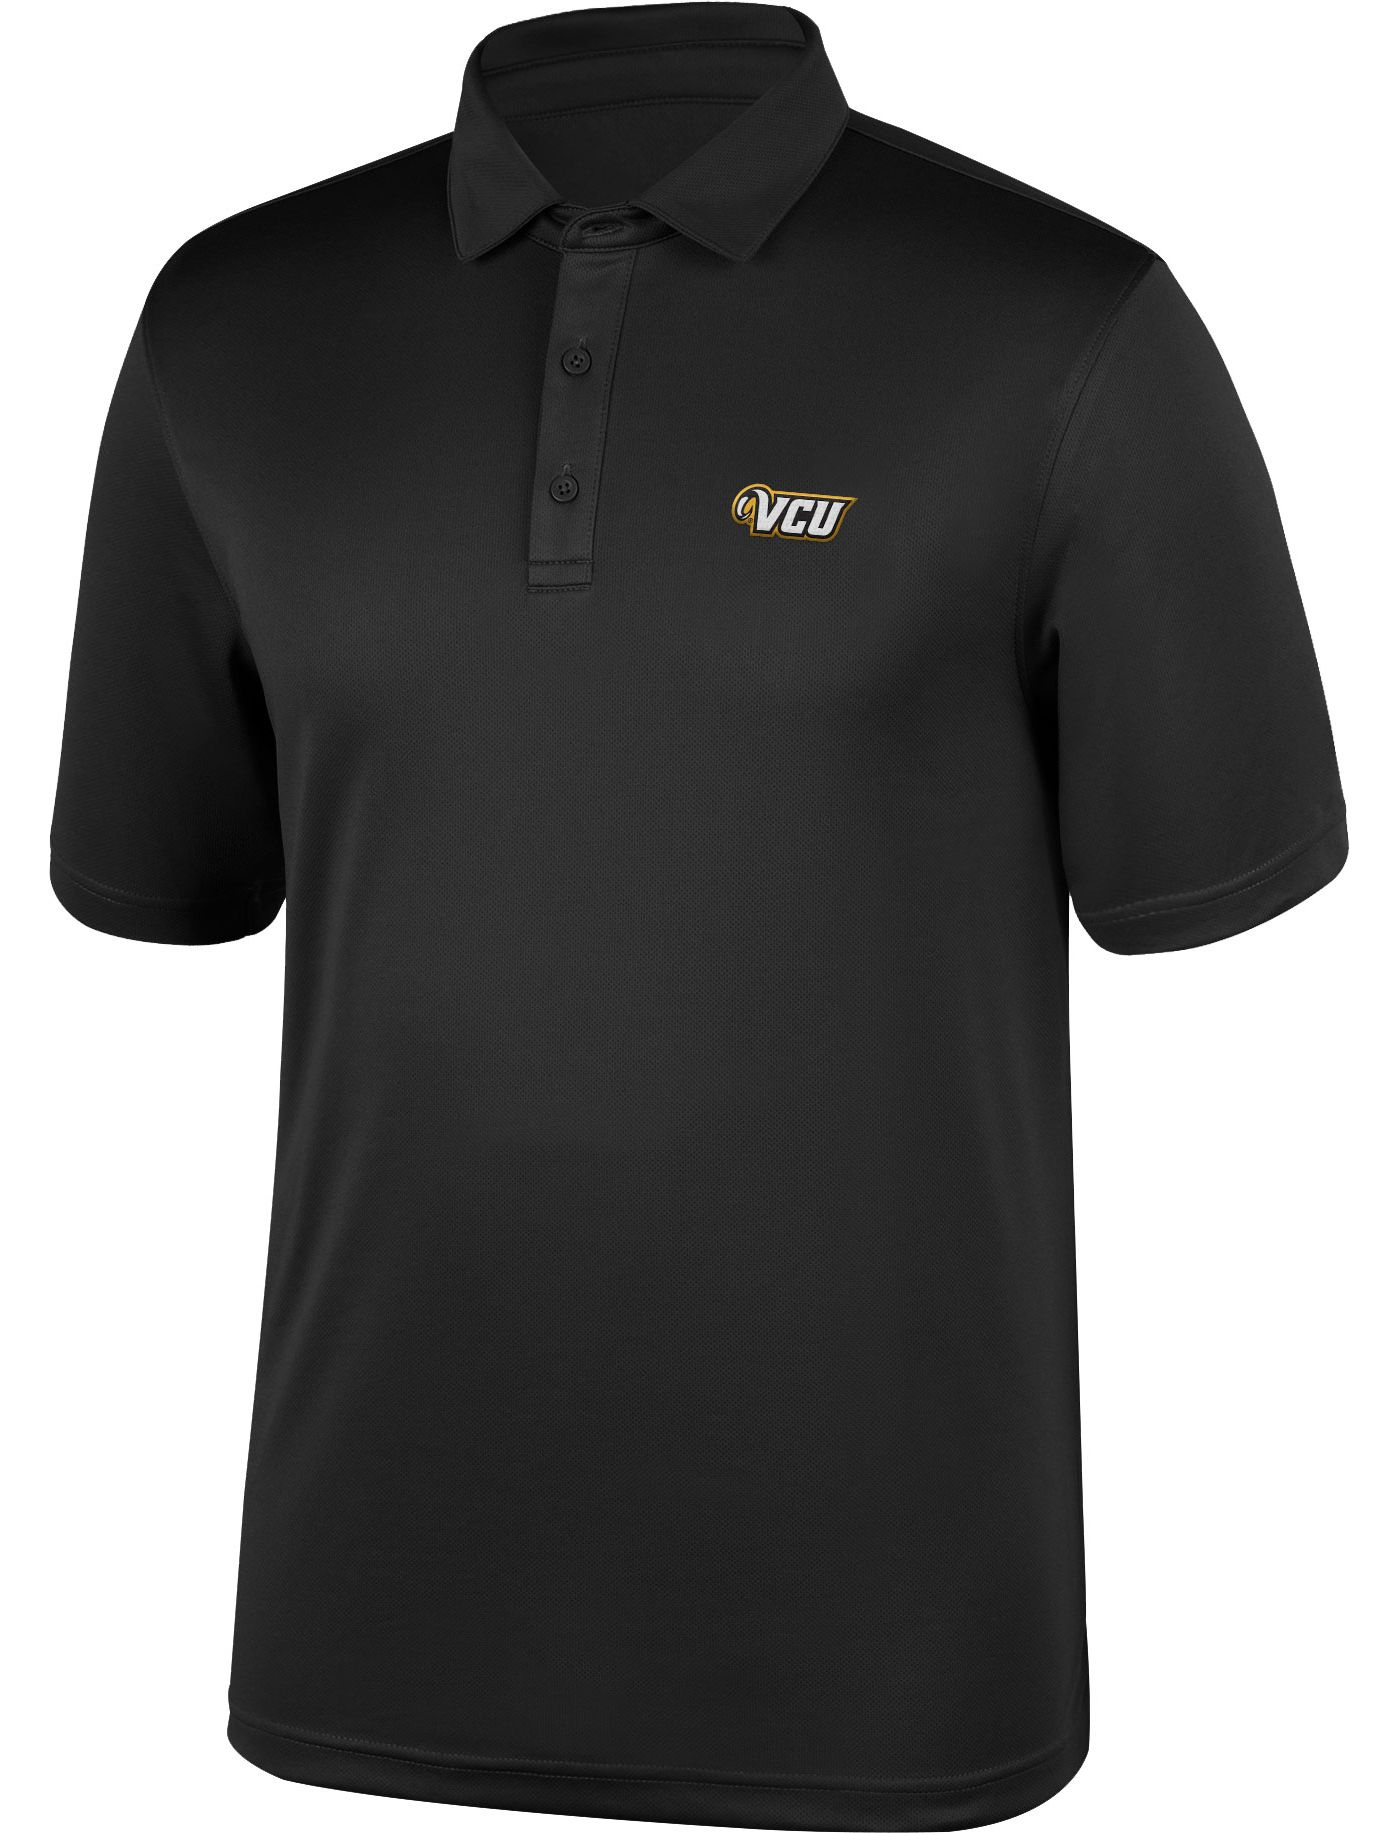 Top of the World Men's VCU Rams Black Polo